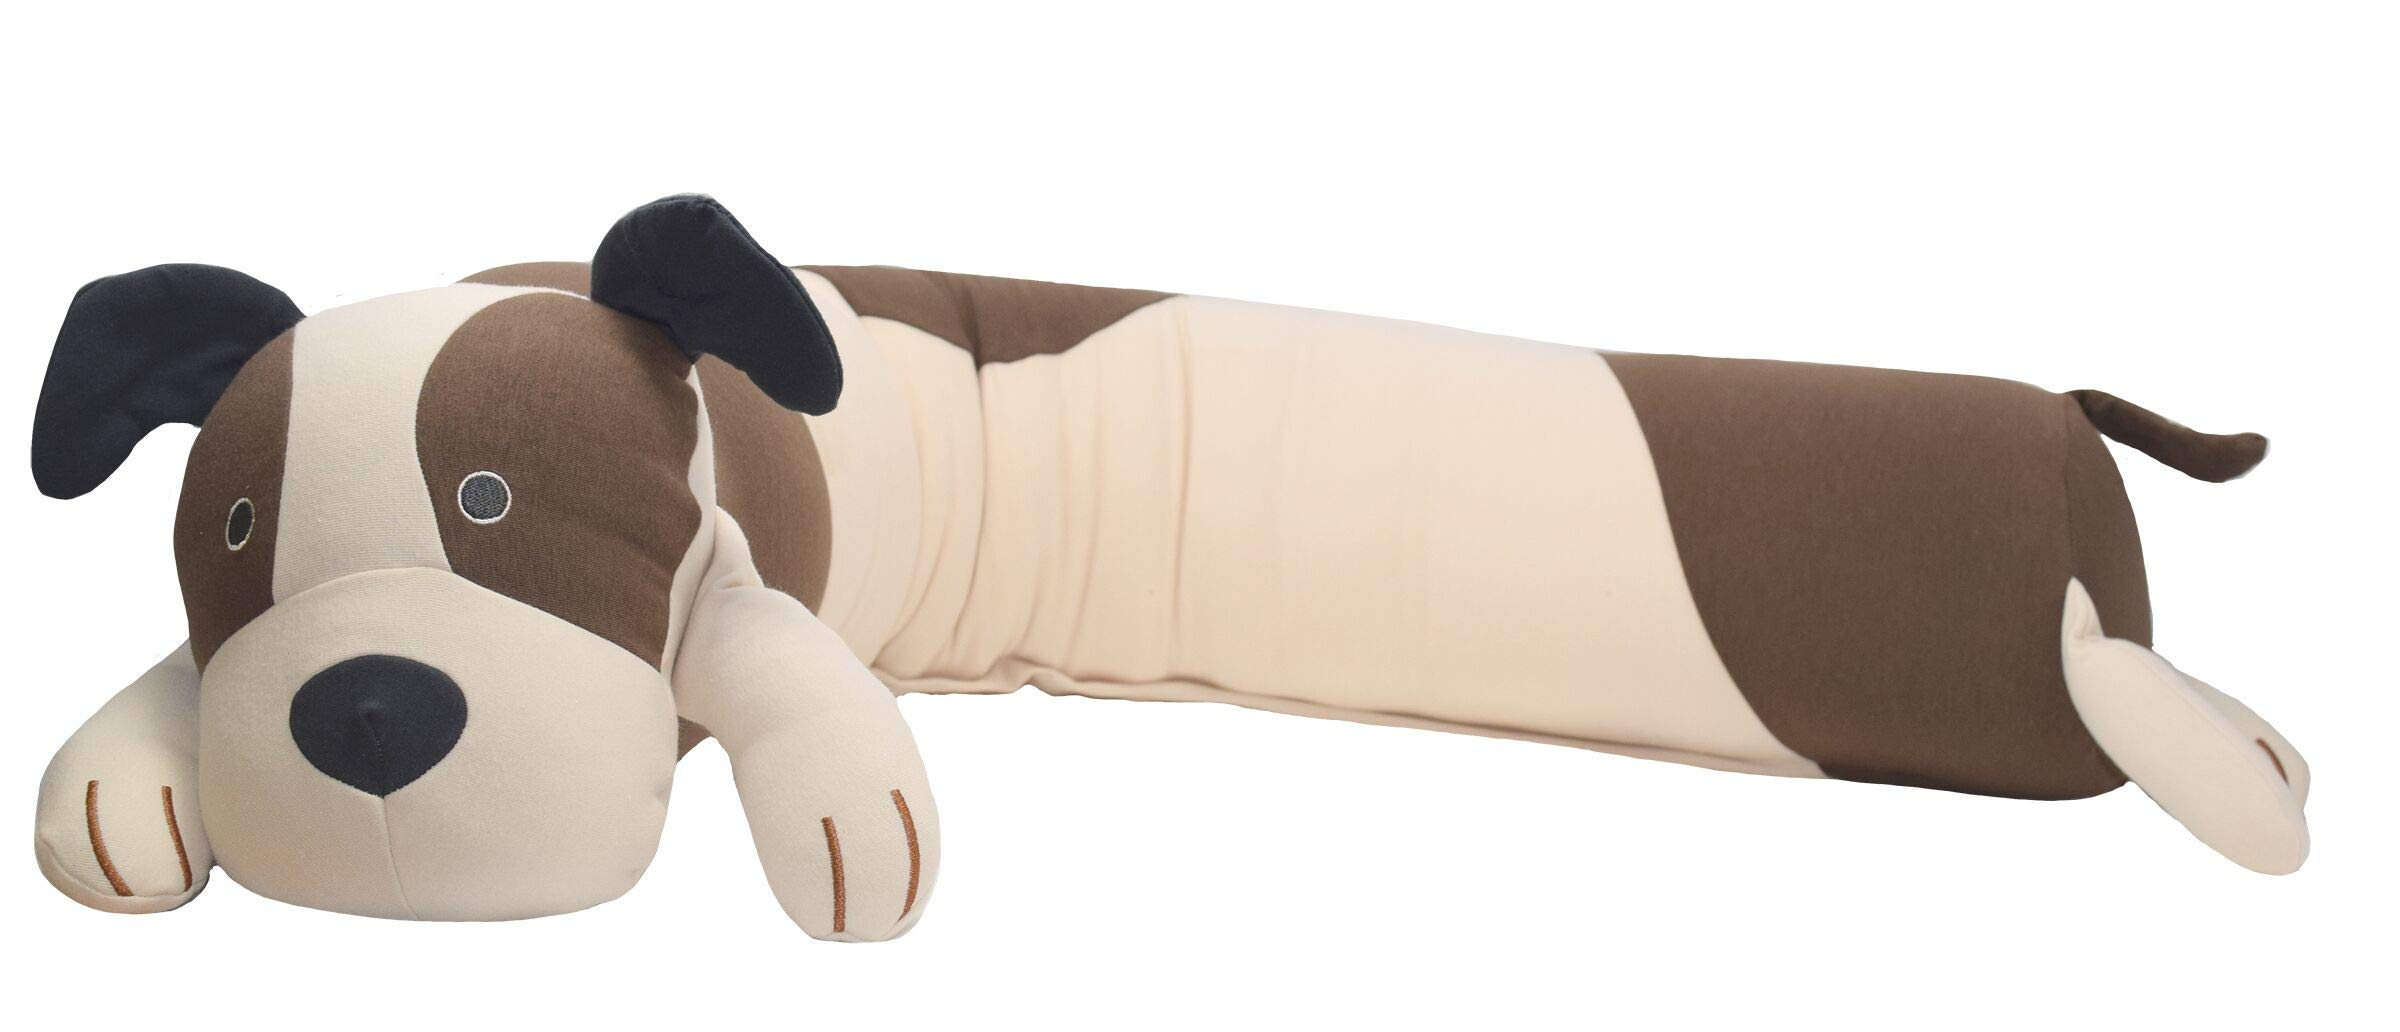 Yogibo Mates Roll Pillow - Comfortable Cylindrical Pillow w/ Patented Fibead Filling - Removable Machine Washable Cotton & Spandex Cover - Perfect to Cuddle - Amazing Neck & Back Support - [Dog]